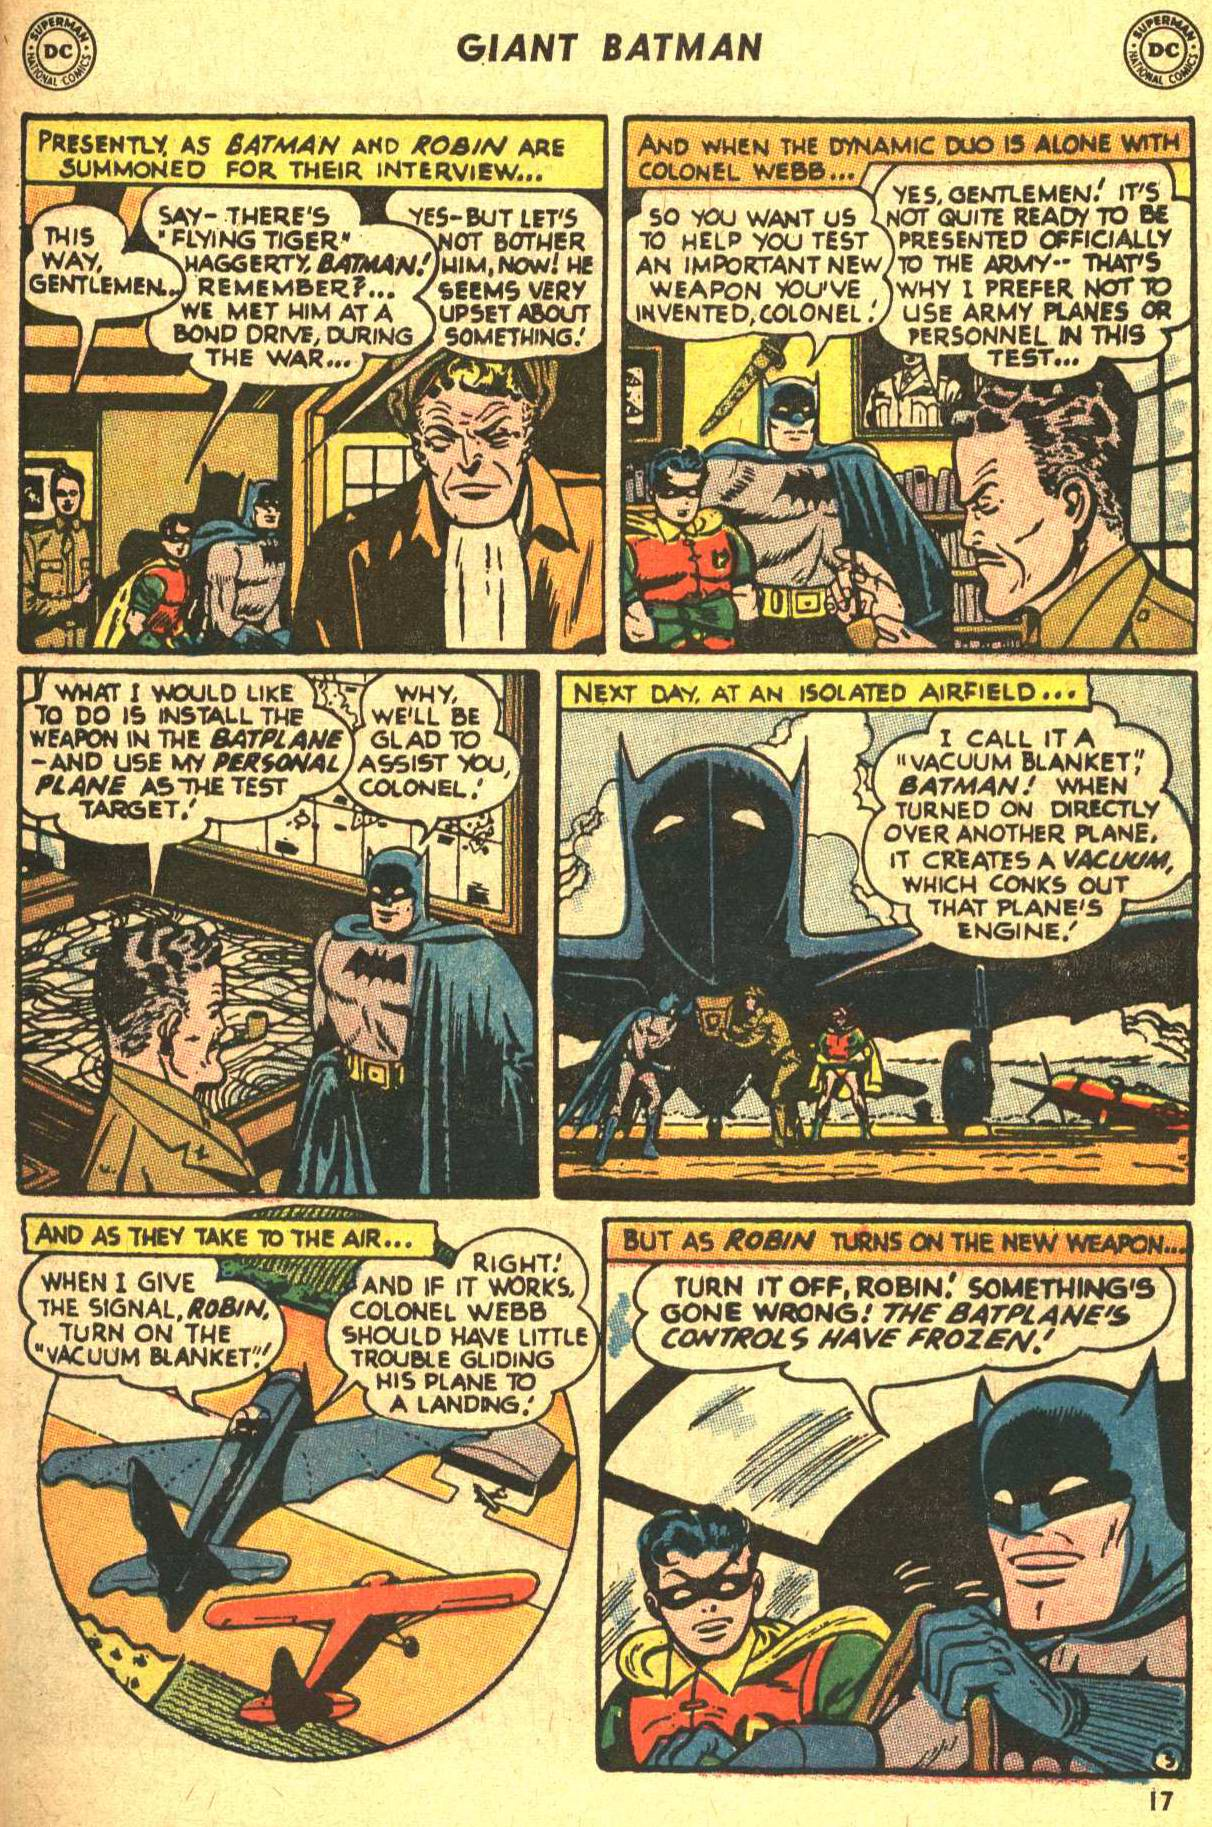 Batman (1940) #203 - Read Batman (1940) Issue #203 Online